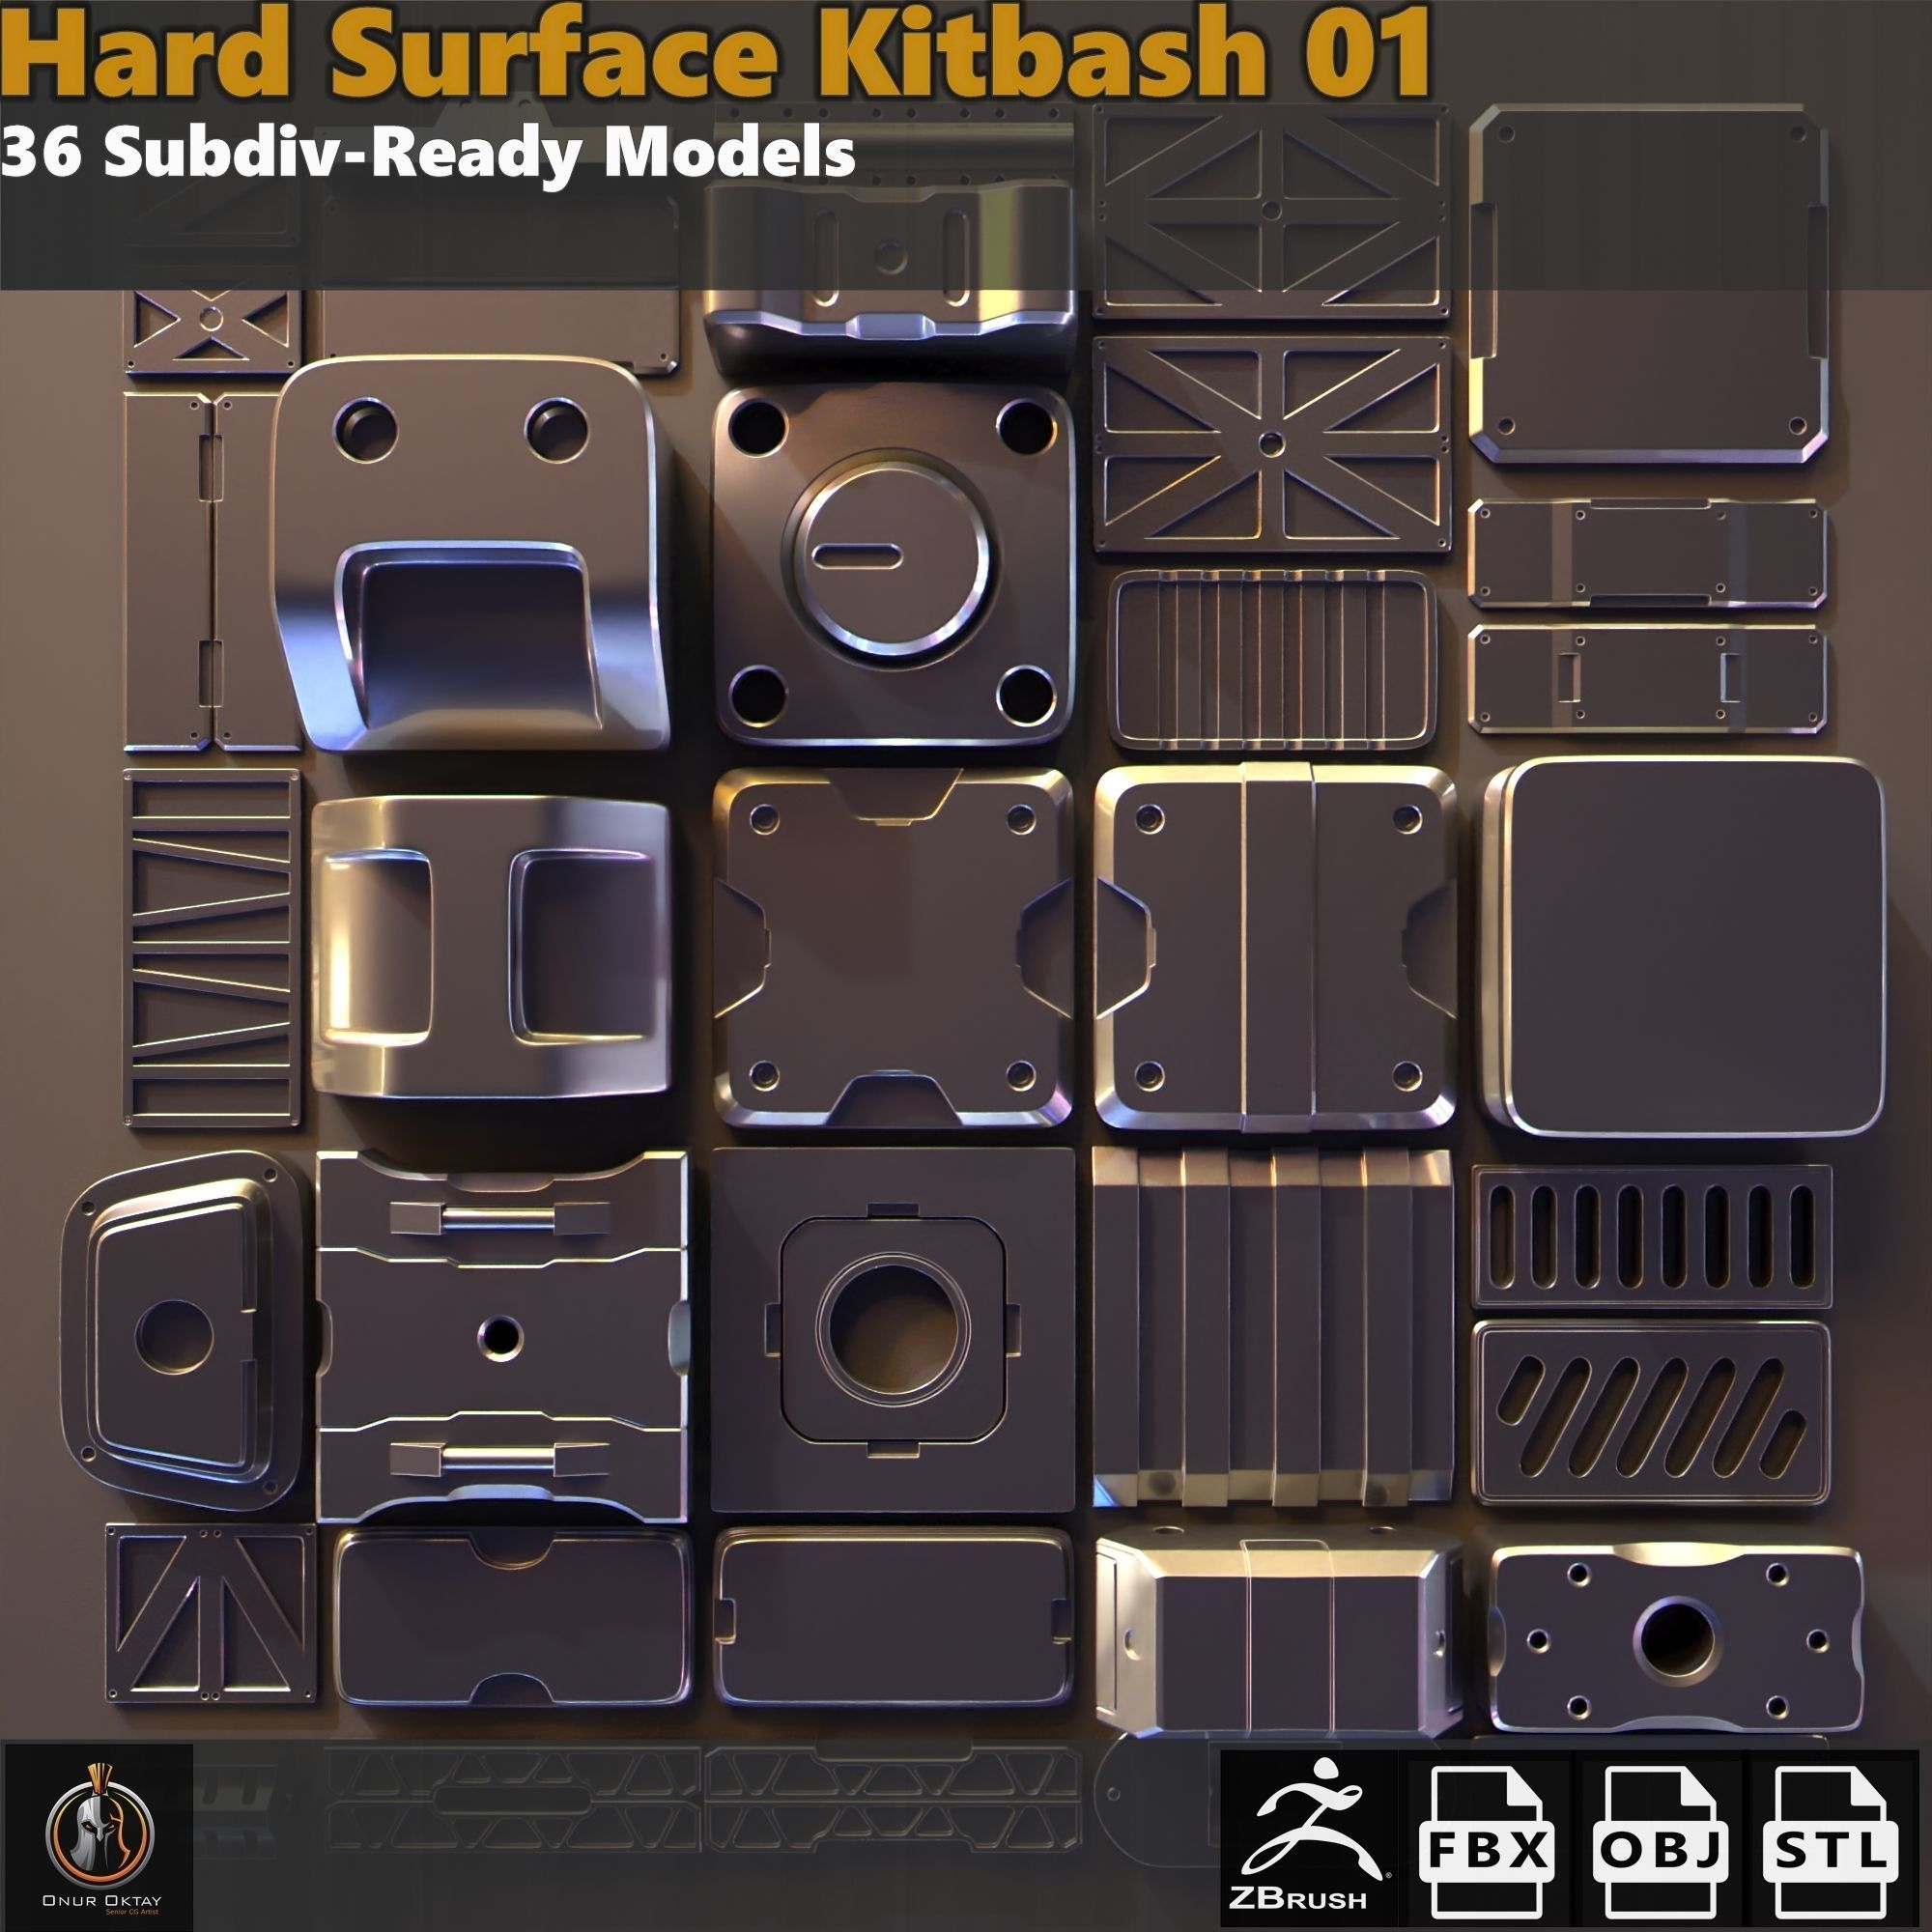 Hard Surface Kitbash 01 - Subdiv-Ready | 3D model